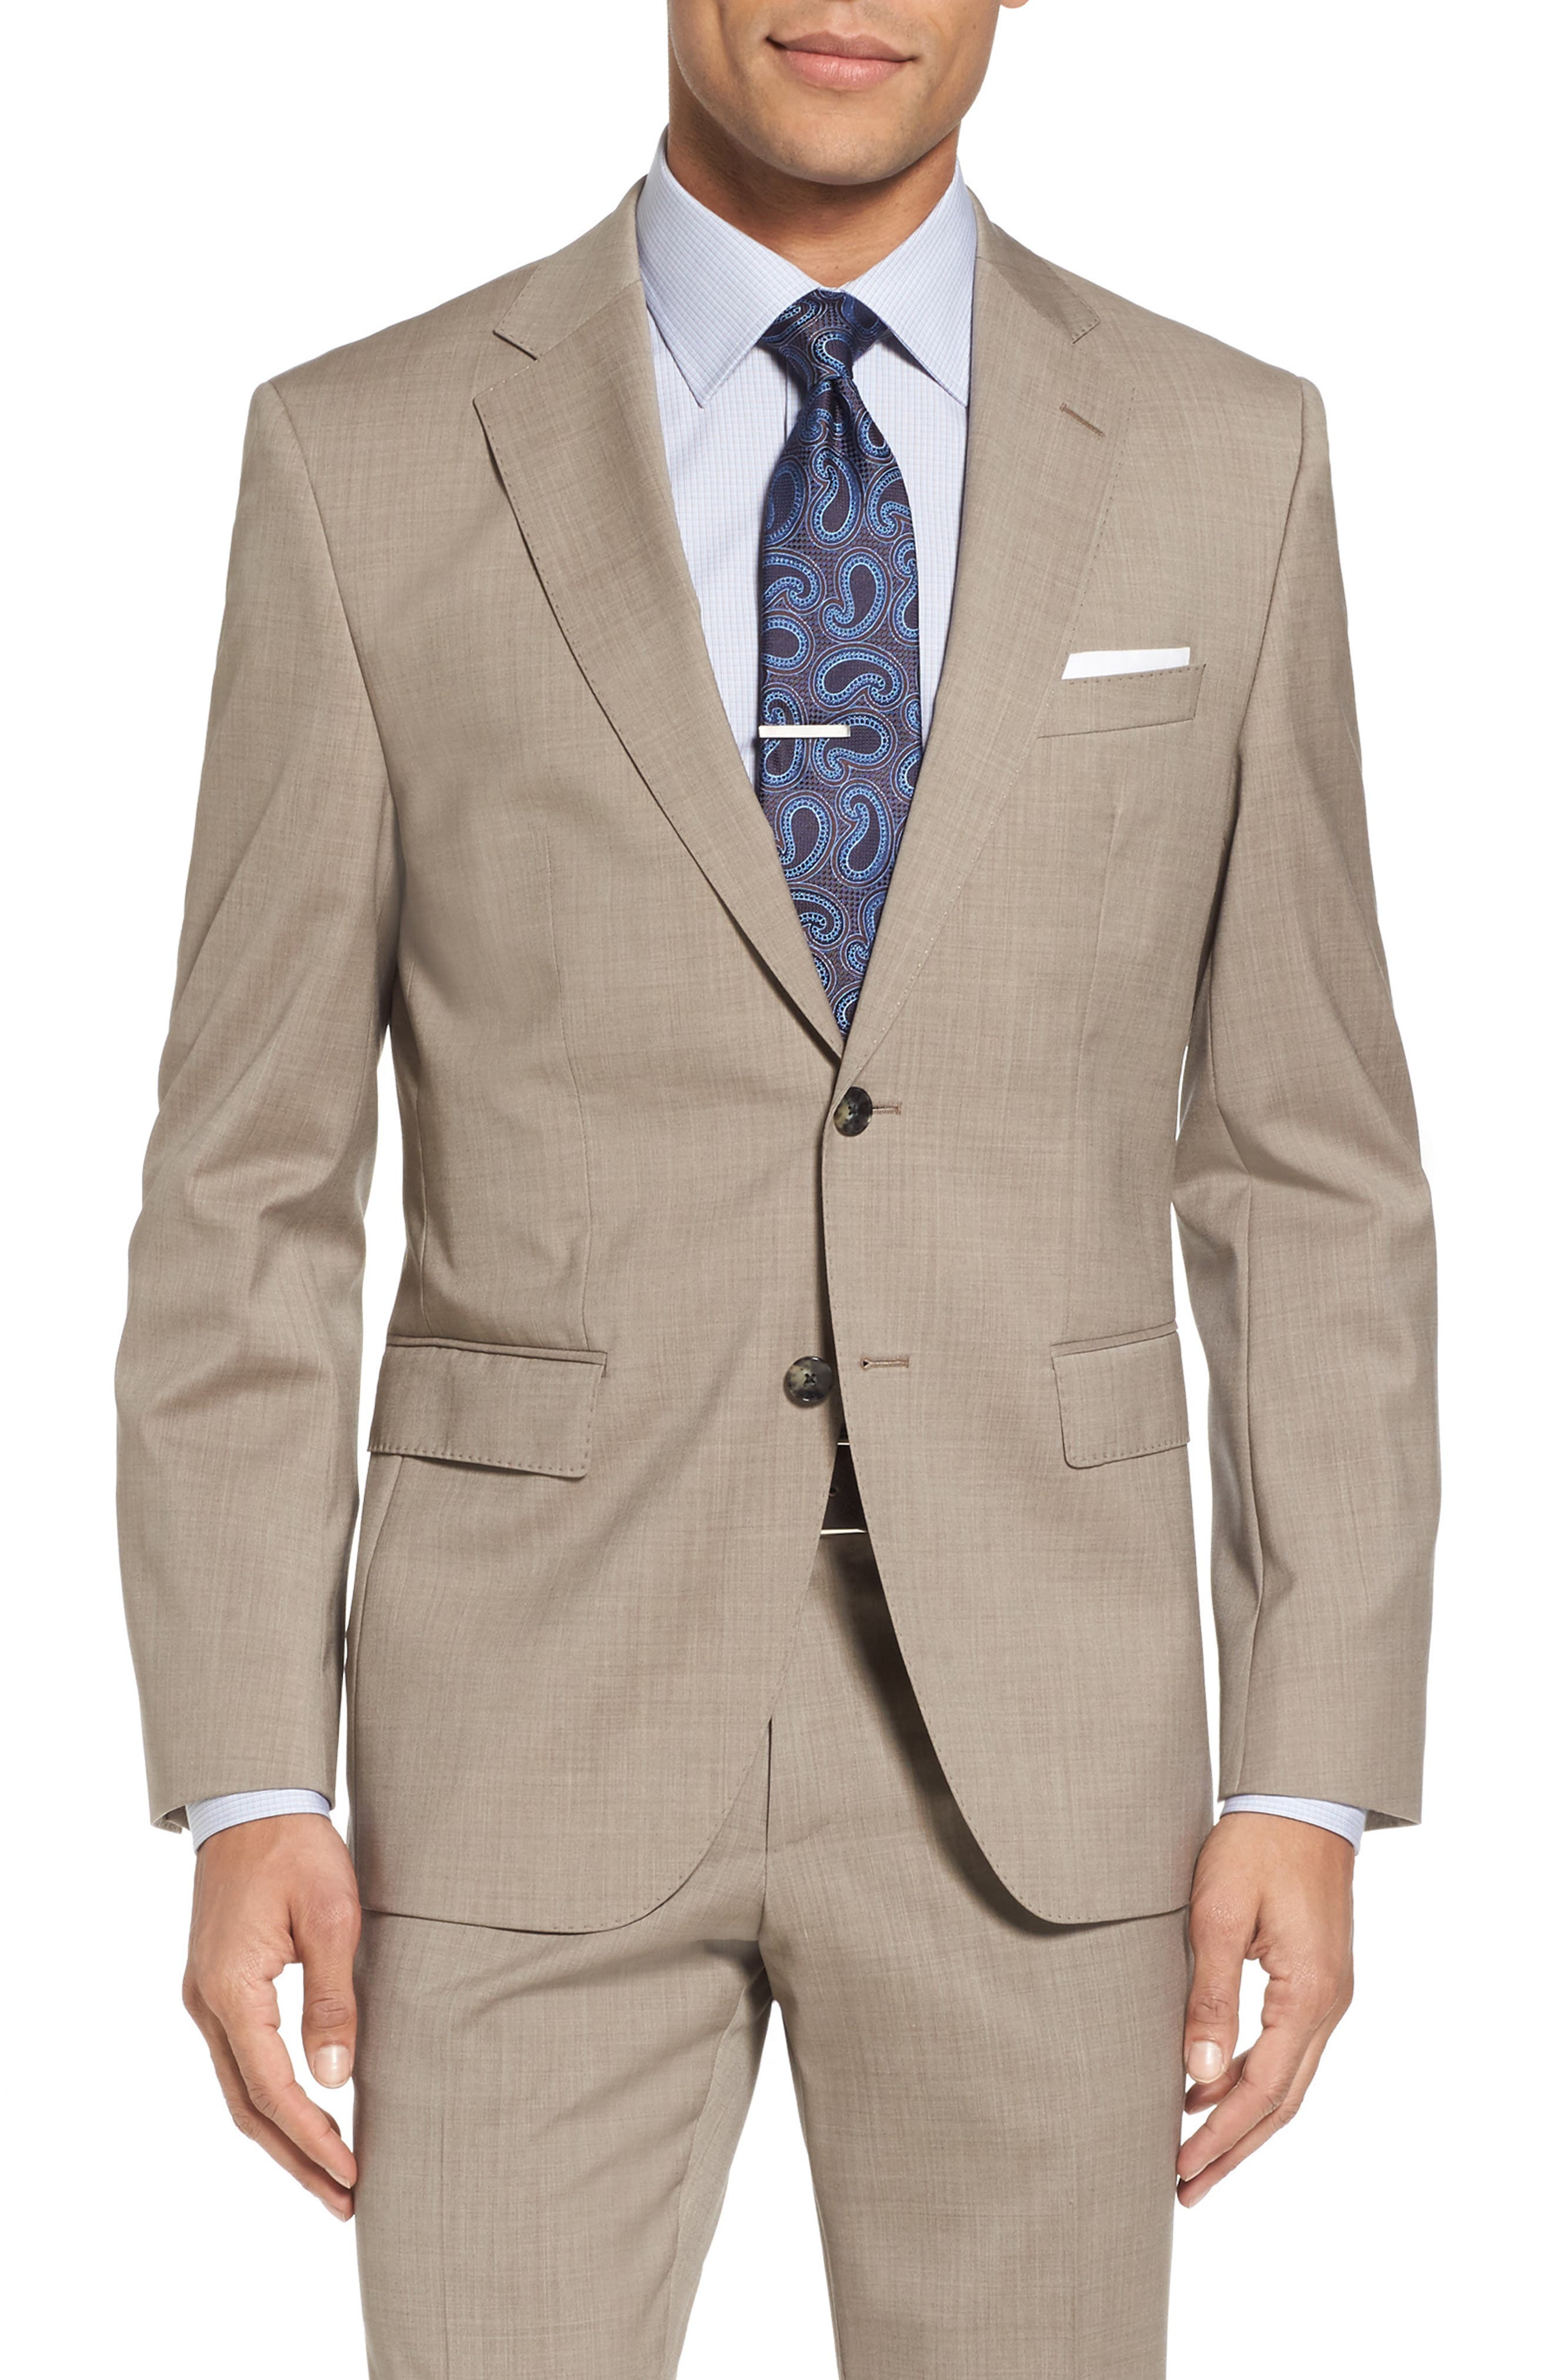 Johnstons/Lenon Classic Fit Solid Wool Suit,                             Alternate thumbnail 6, color,                             Medium Beige